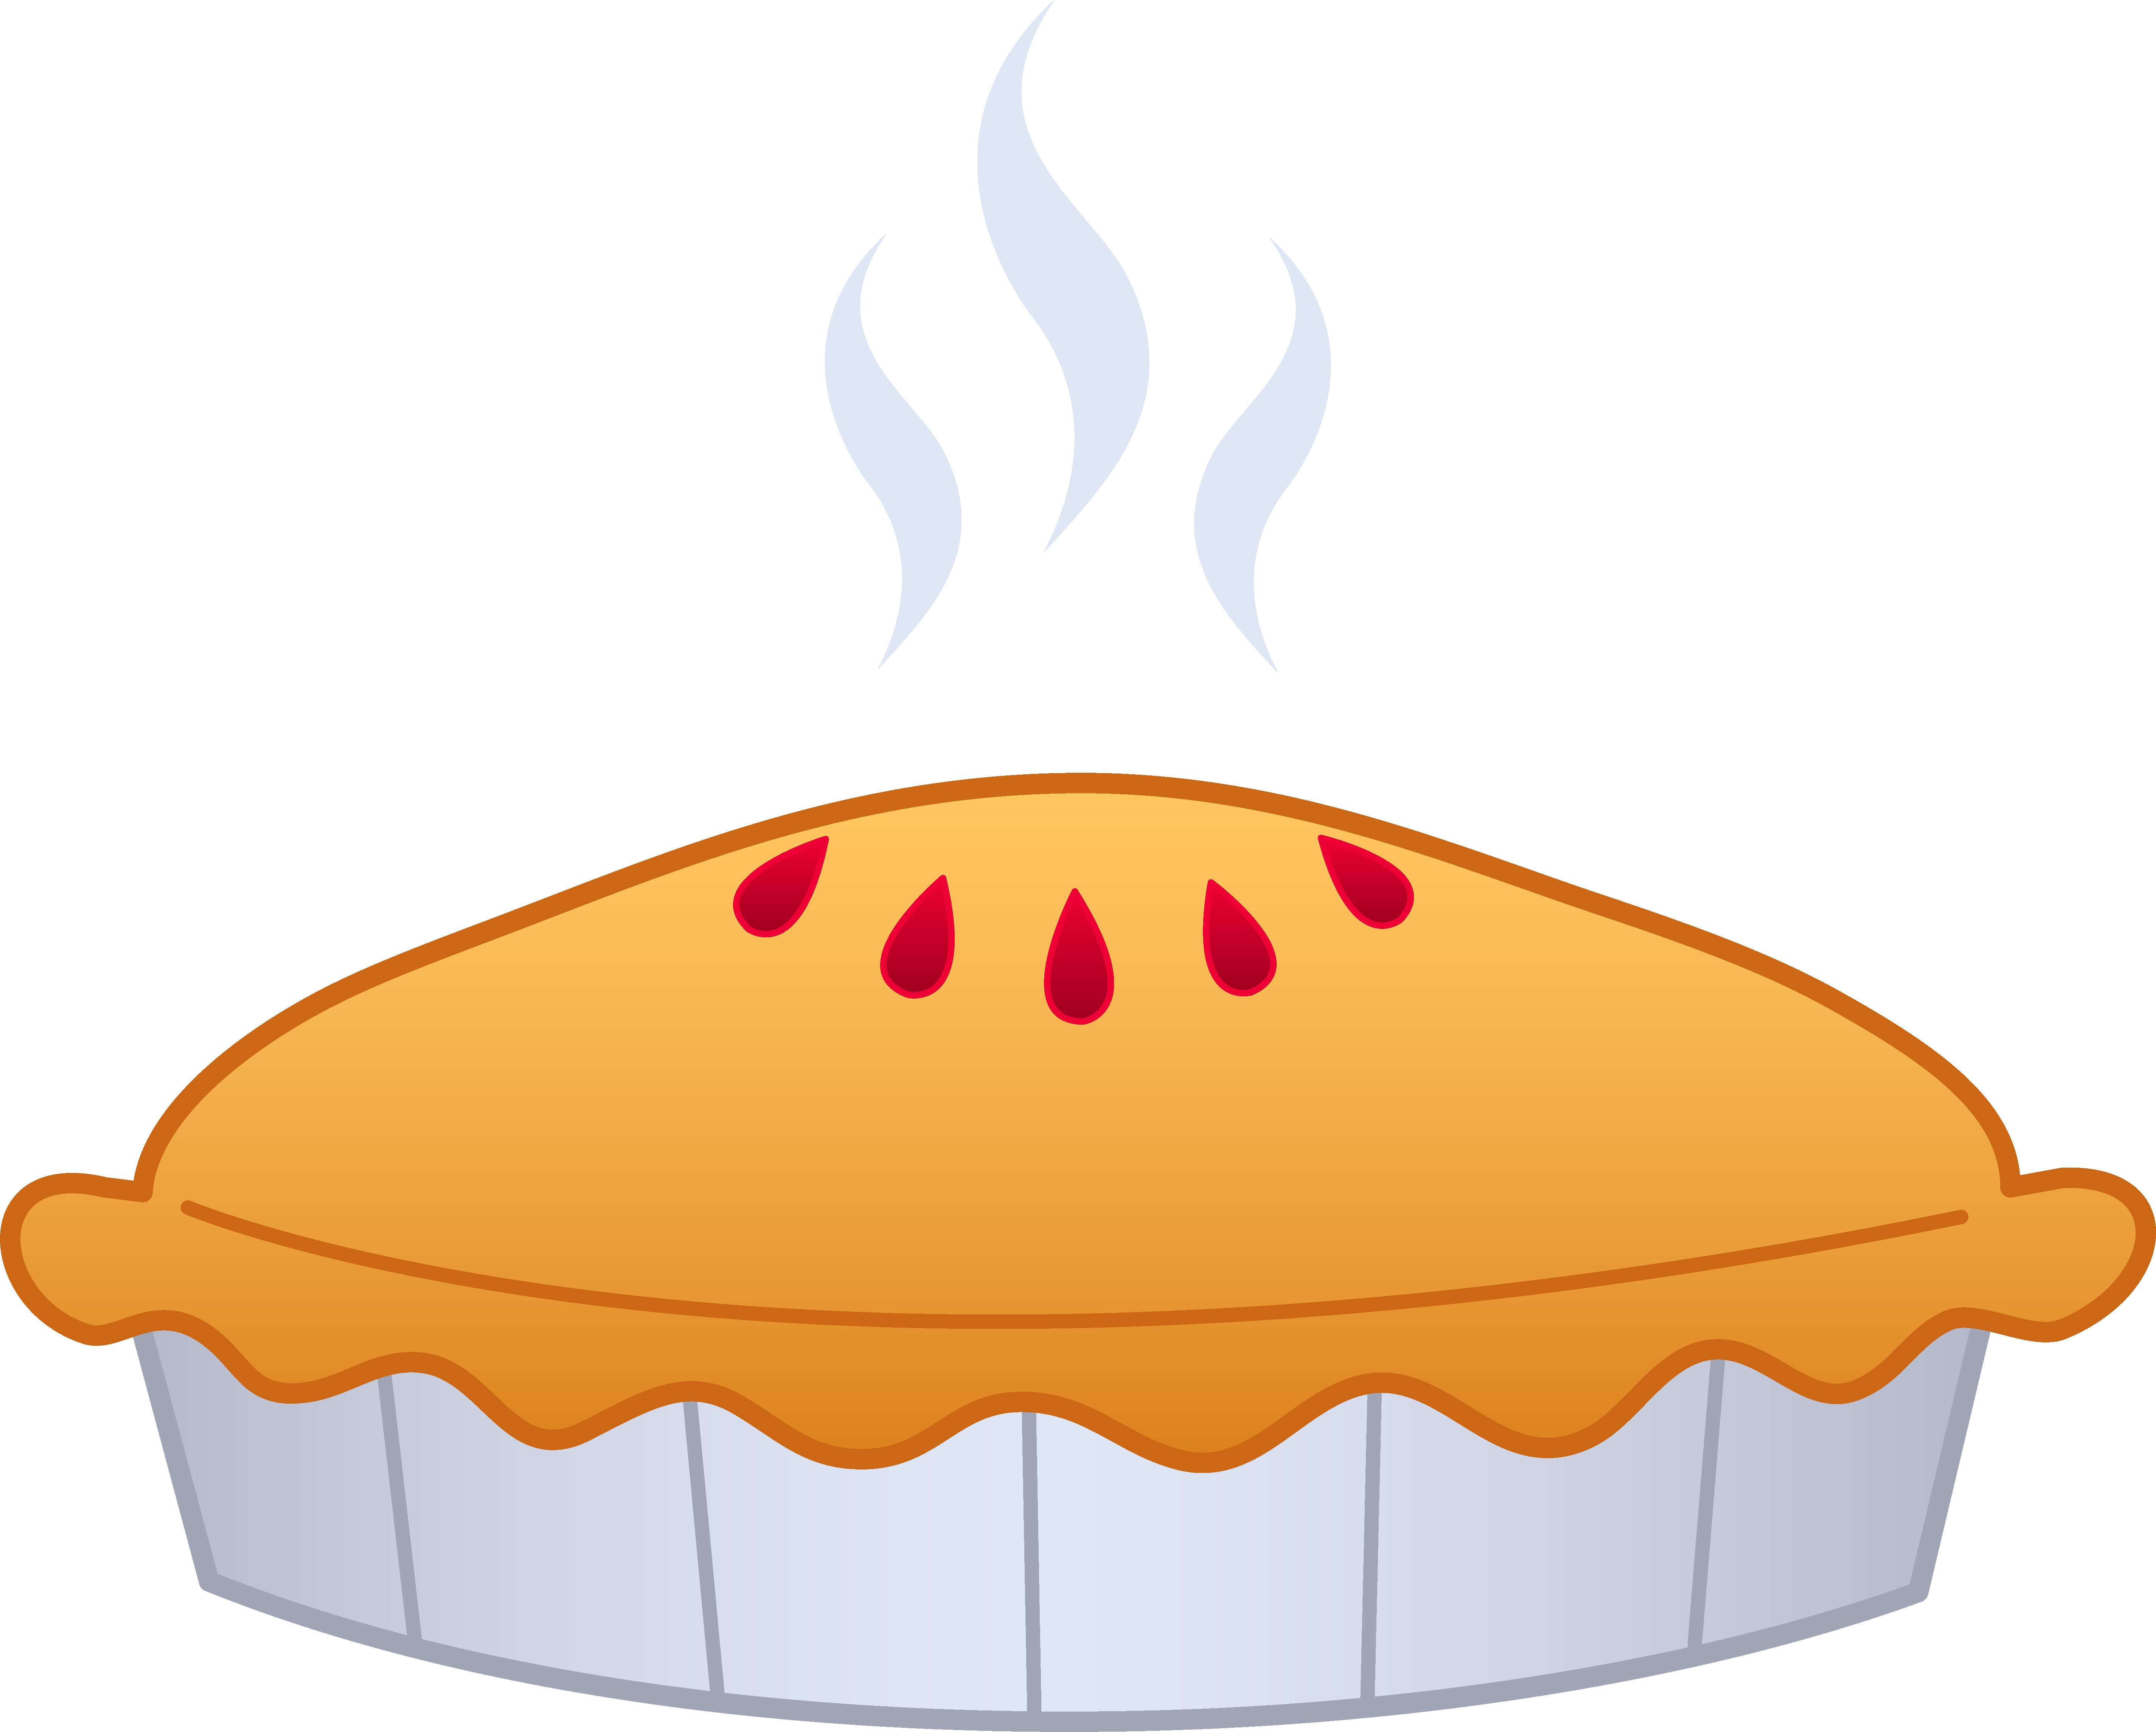 Cartoon pie png. Available pies each gfwc